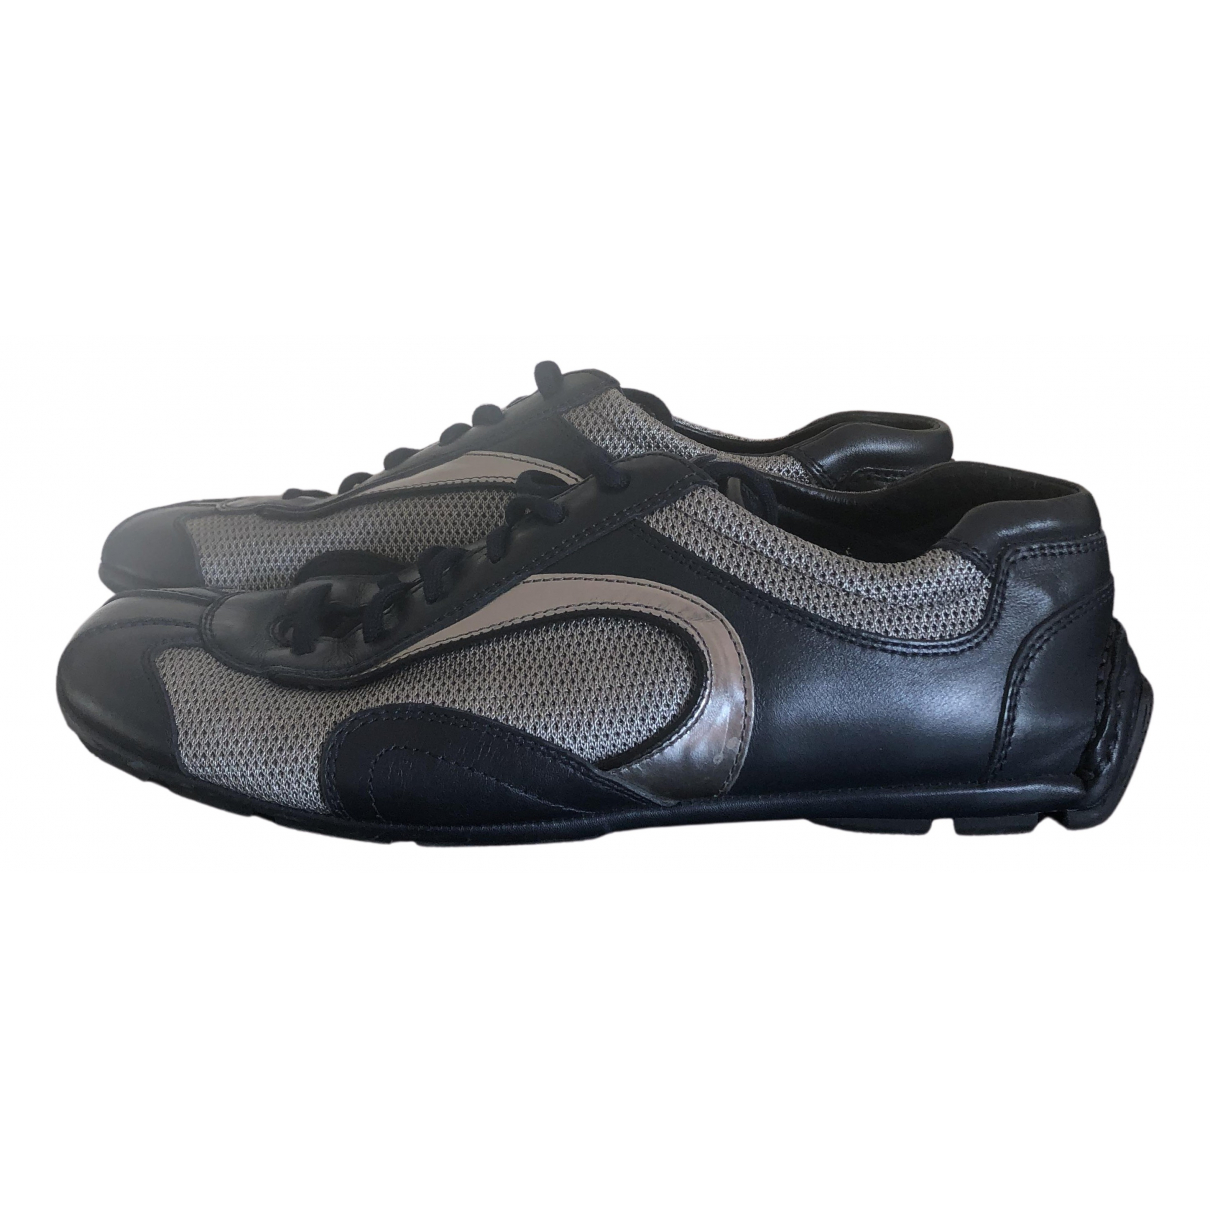 Prada N Navy Leather Trainers for Men 6 US